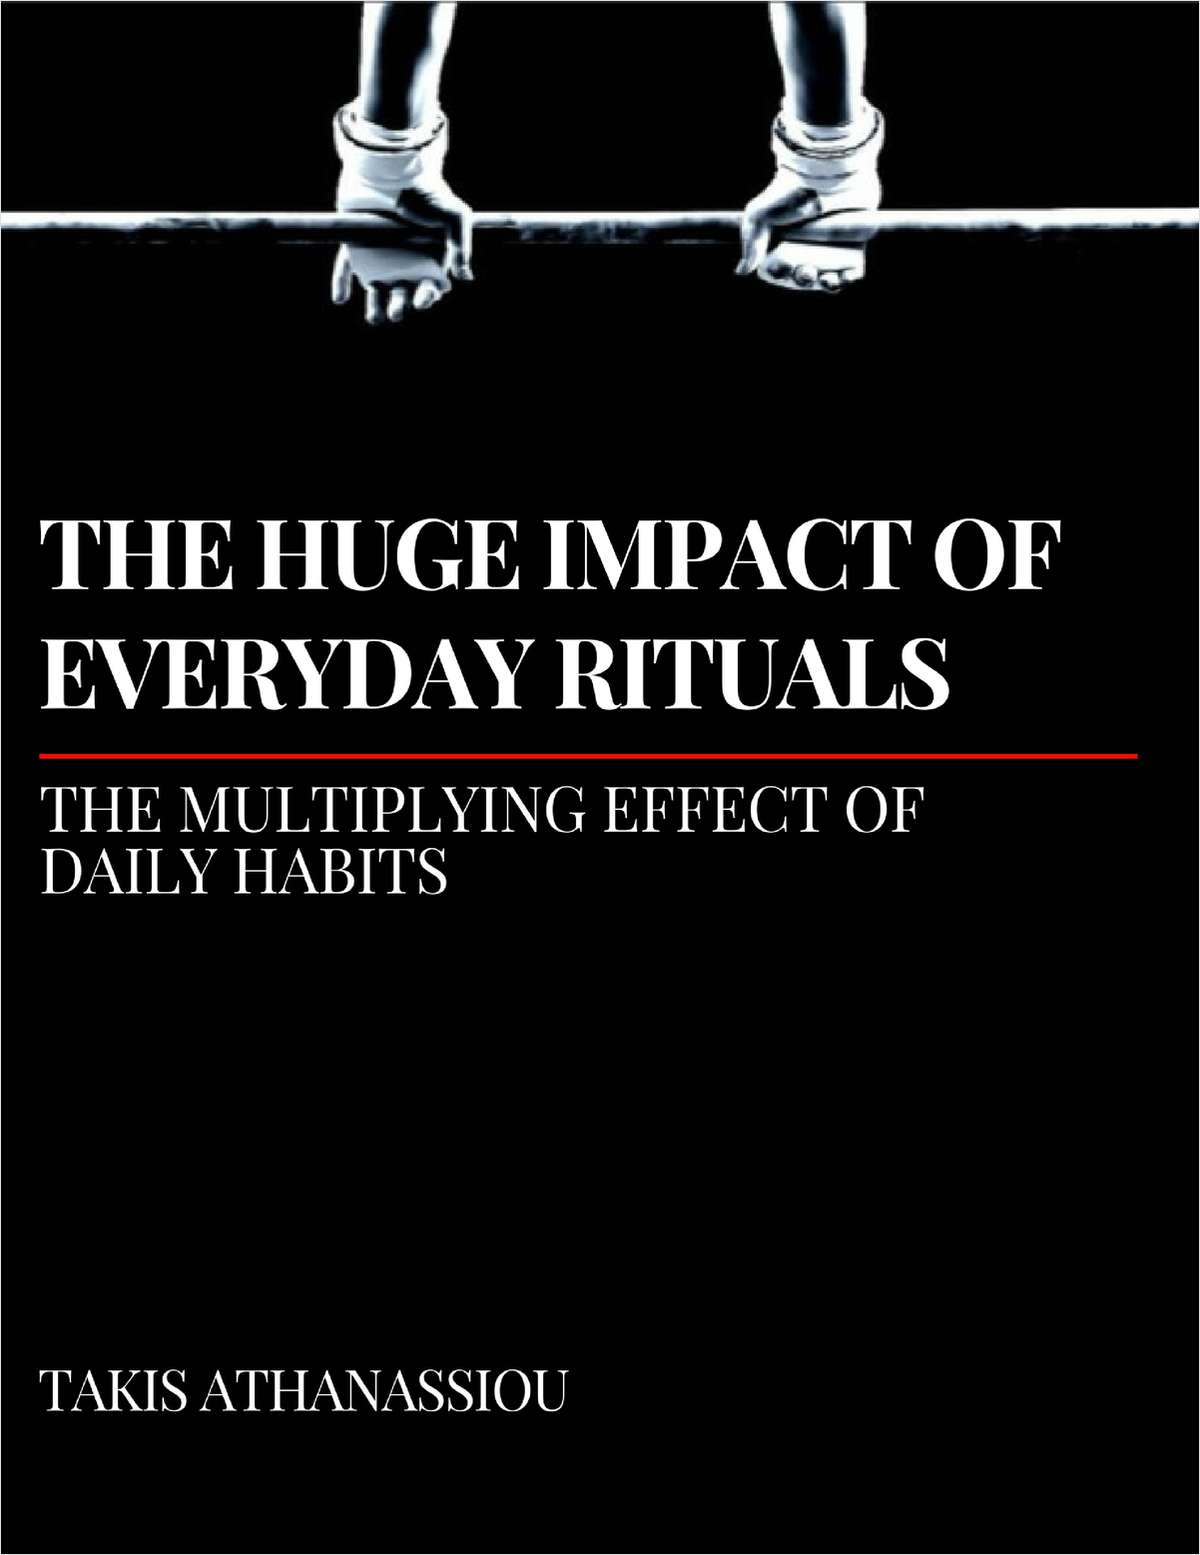 The Huge Impact of Everyday Rituals - The Multiplying Effect of Daily Habits